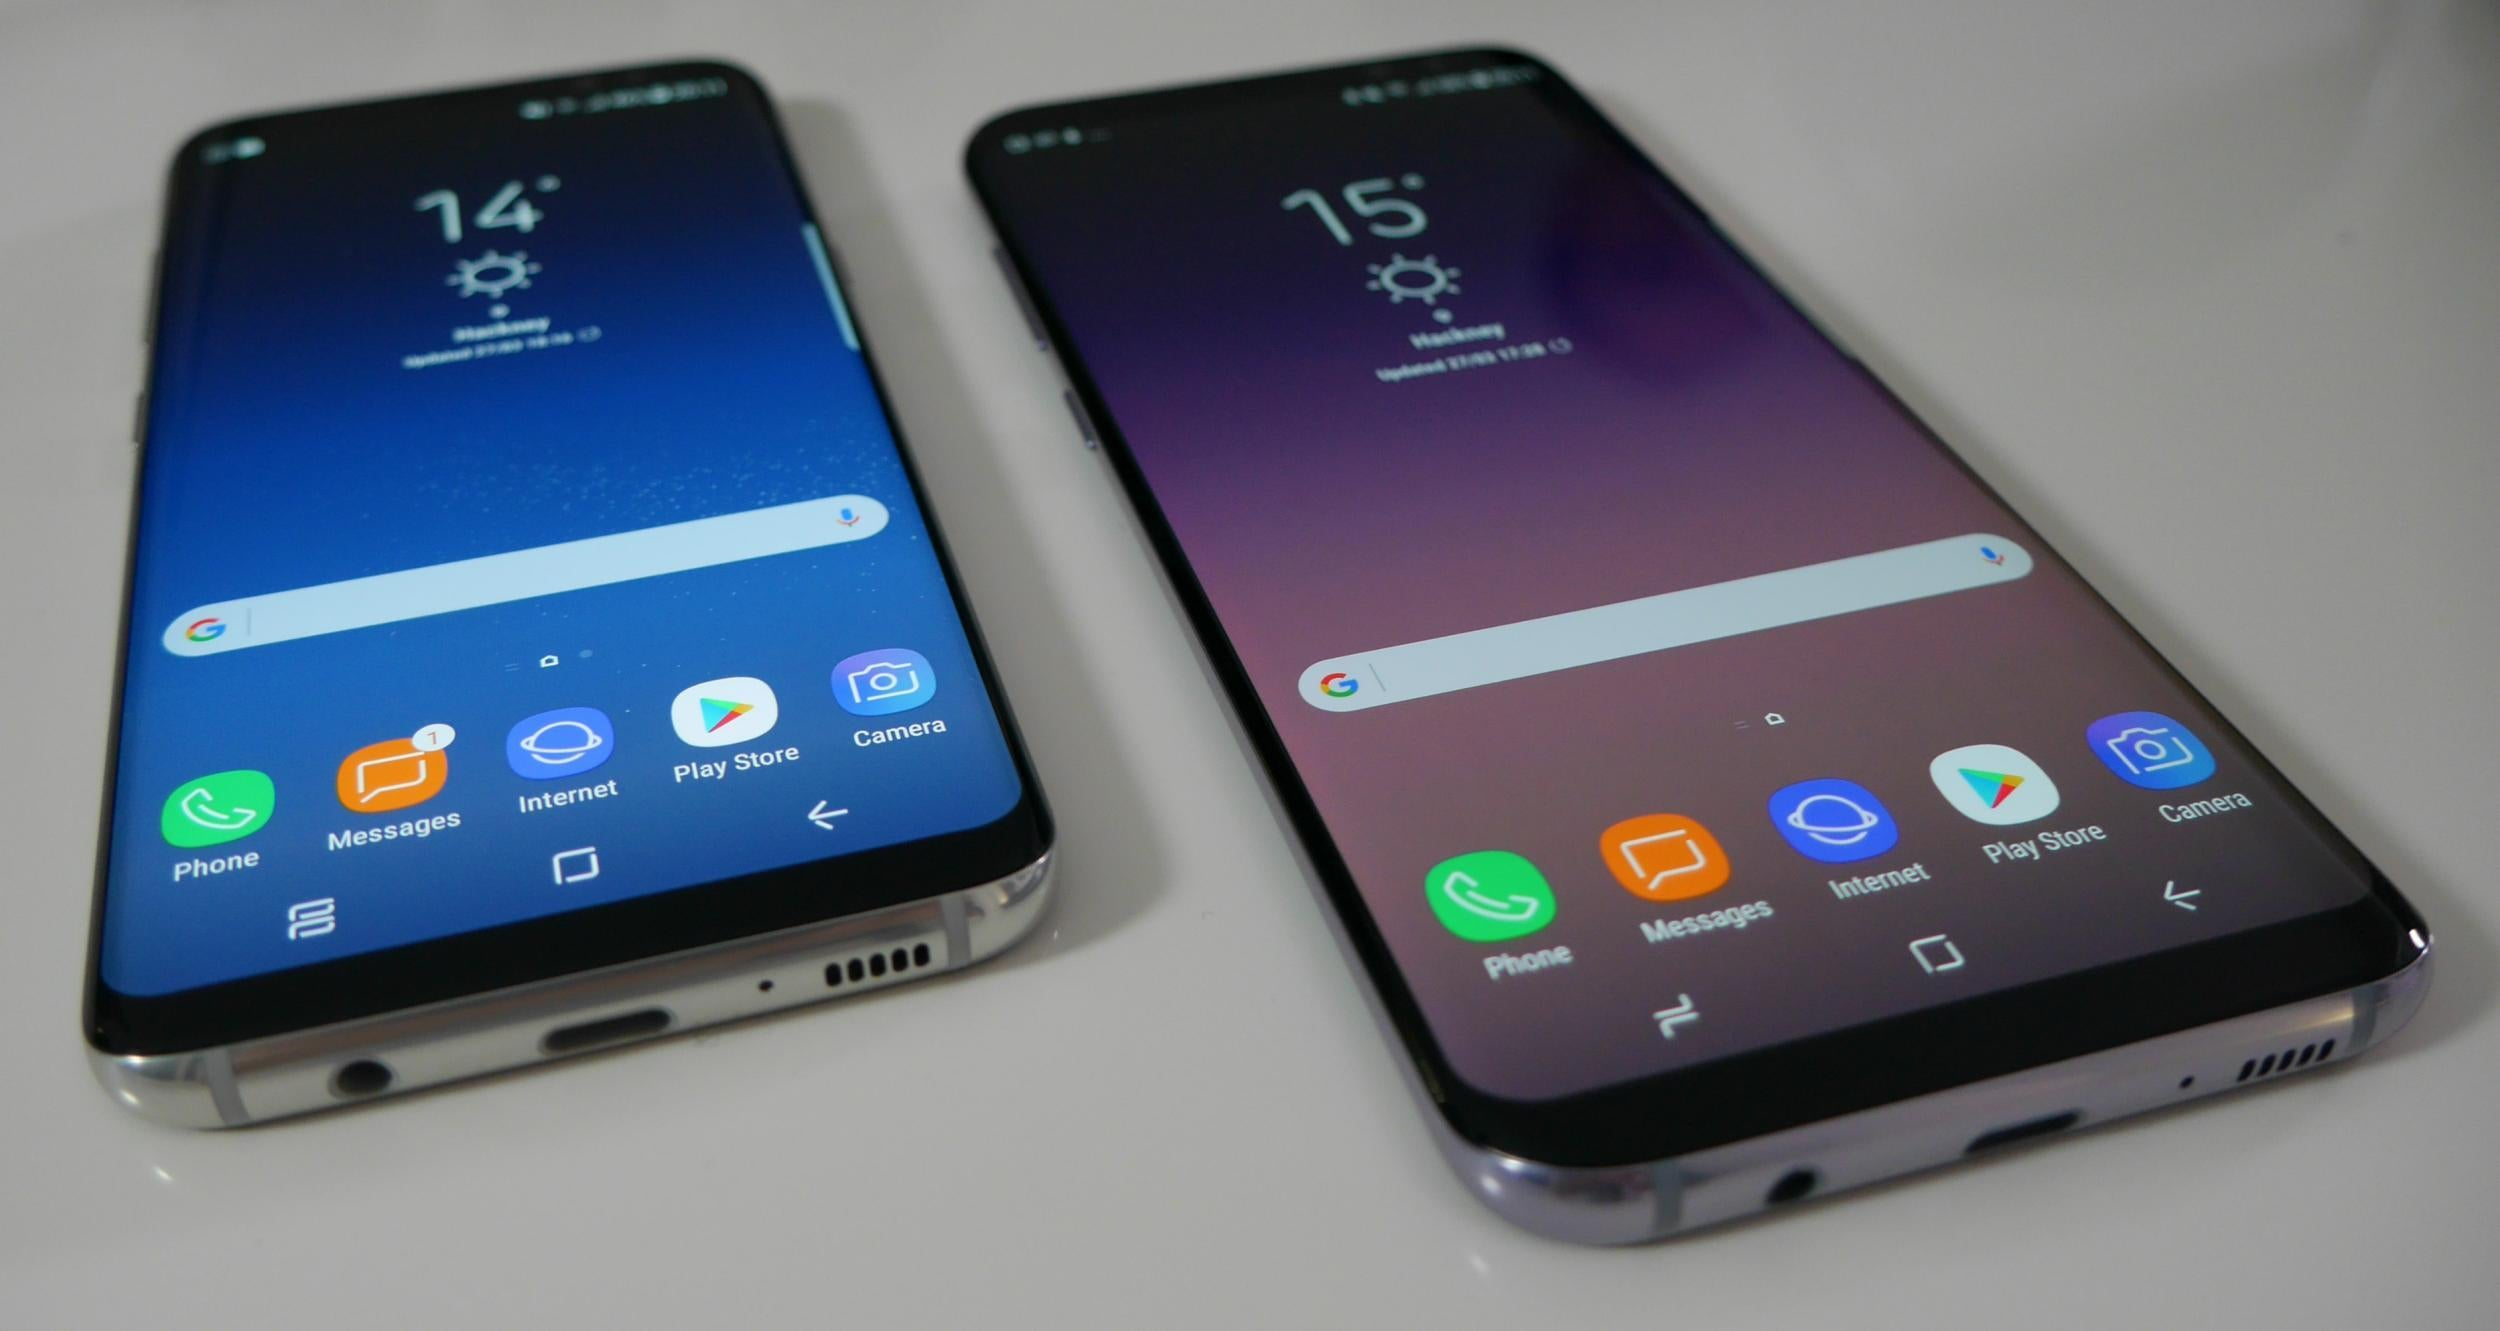 Samsung Galaxy S8 review: It's the best Android smartphone